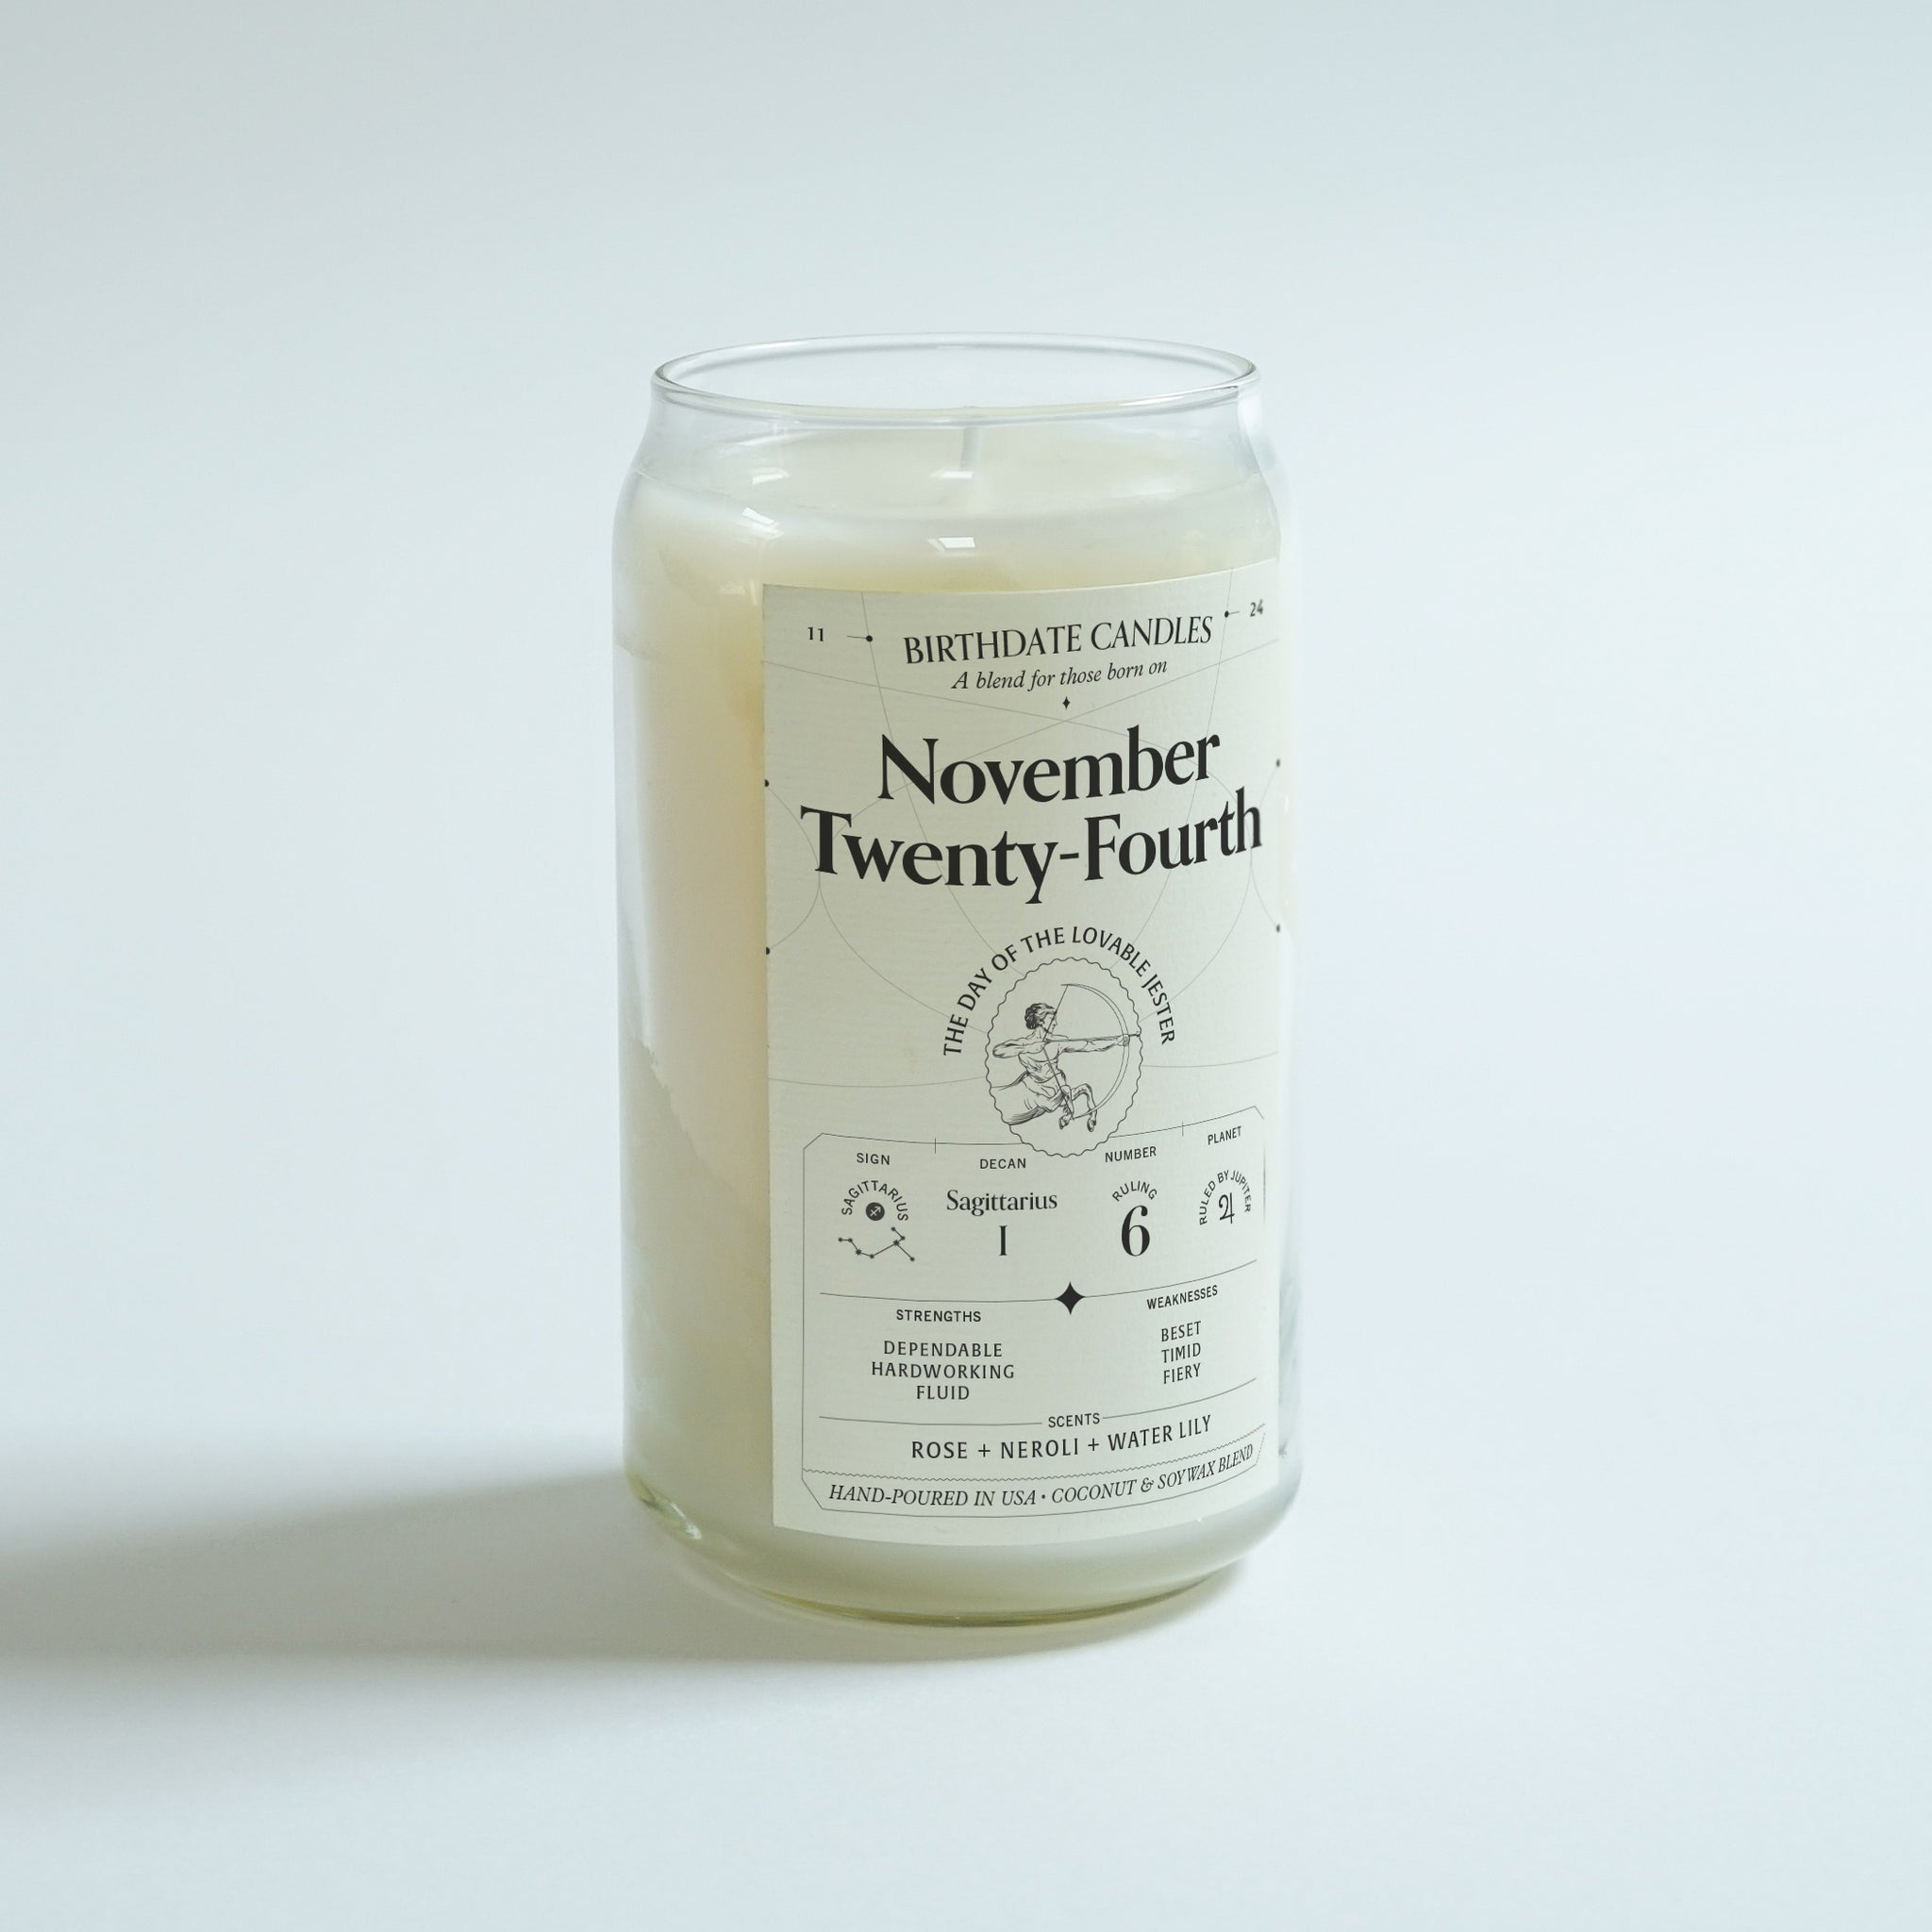 The November Twenty-Fourth Birthday Candle